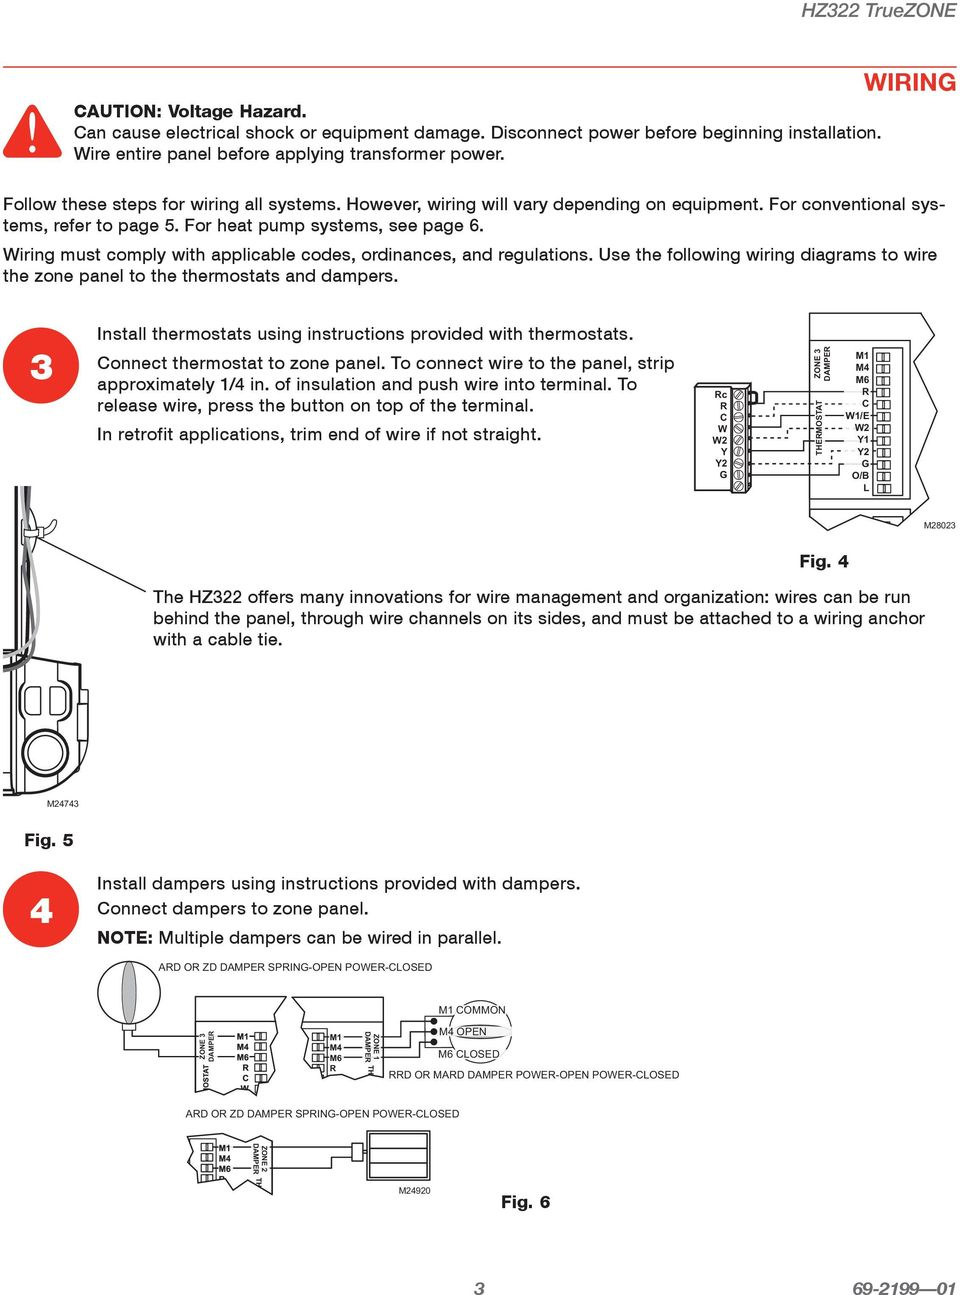 hight resolution of wiring must comply with applicable codes ordinances and regulations use the following wiring